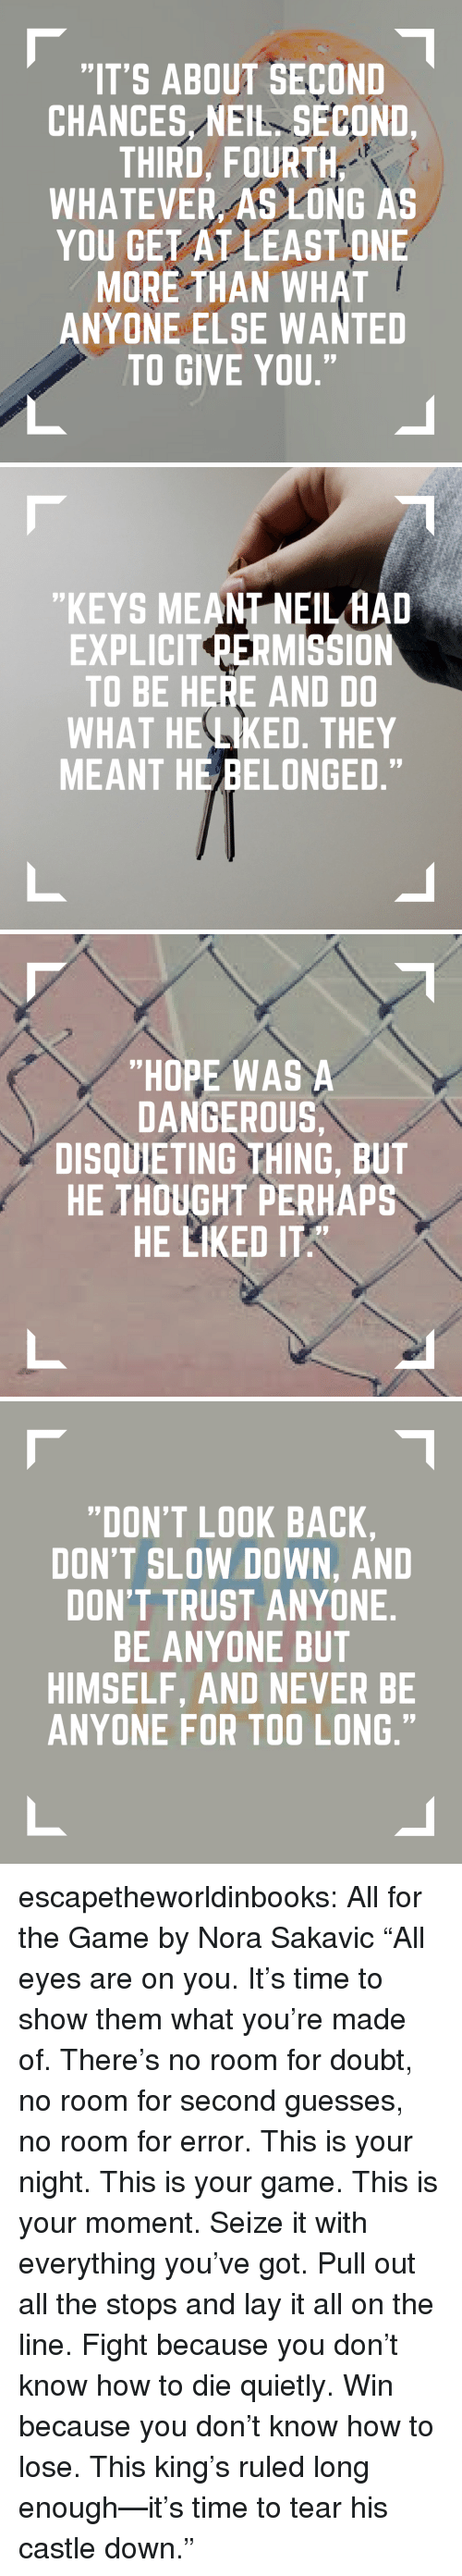 """nora: """"IT'S ABOUT SECOND  CHANCES NEIL SECOND.  THIRD, FOURTH  WHATEVER, AS LONG AS  YOU GET AT LEAST ONE  MORE THAN WHAT  ANYONE ELSE WANTED  TO GIVE YOU.""""   """"KEYS MEANT NEILHAD  EXPLICIT PERMISSION  TO BE HERE AND D0  WHAT HE LIKED. THEY  MEANT HE BELONGED,""""   """"HOPE WAS A  DANGEROUS  DISQUIETING THING, BUT  HE THOUGHT PERHAPS  HE LIKED ITA  97   """"DON'T LOOK BACK  DON'T SLOW DOWN, AND  DON'T TRUST ANYONE  BE ANYONE BUT  HIMSELF, AND NEVER BE  ANYONE FOR TOO LONG.""""  09  09 escapetheworldinbooks:  All for the Game by Nora Sakavic """"All eyes are on you. It's time to show them what you're made of. There's no room for doubt, no room for second guesses, no room for error. This is your night. This is your game. This is your moment. Seize it with everything you've got. Pull out all the stops and lay it all on the line. Fight because you don't know how to die quietly. Win because you don't know how to lose. This king's ruled long enough—it's time to tear his castle down."""""""